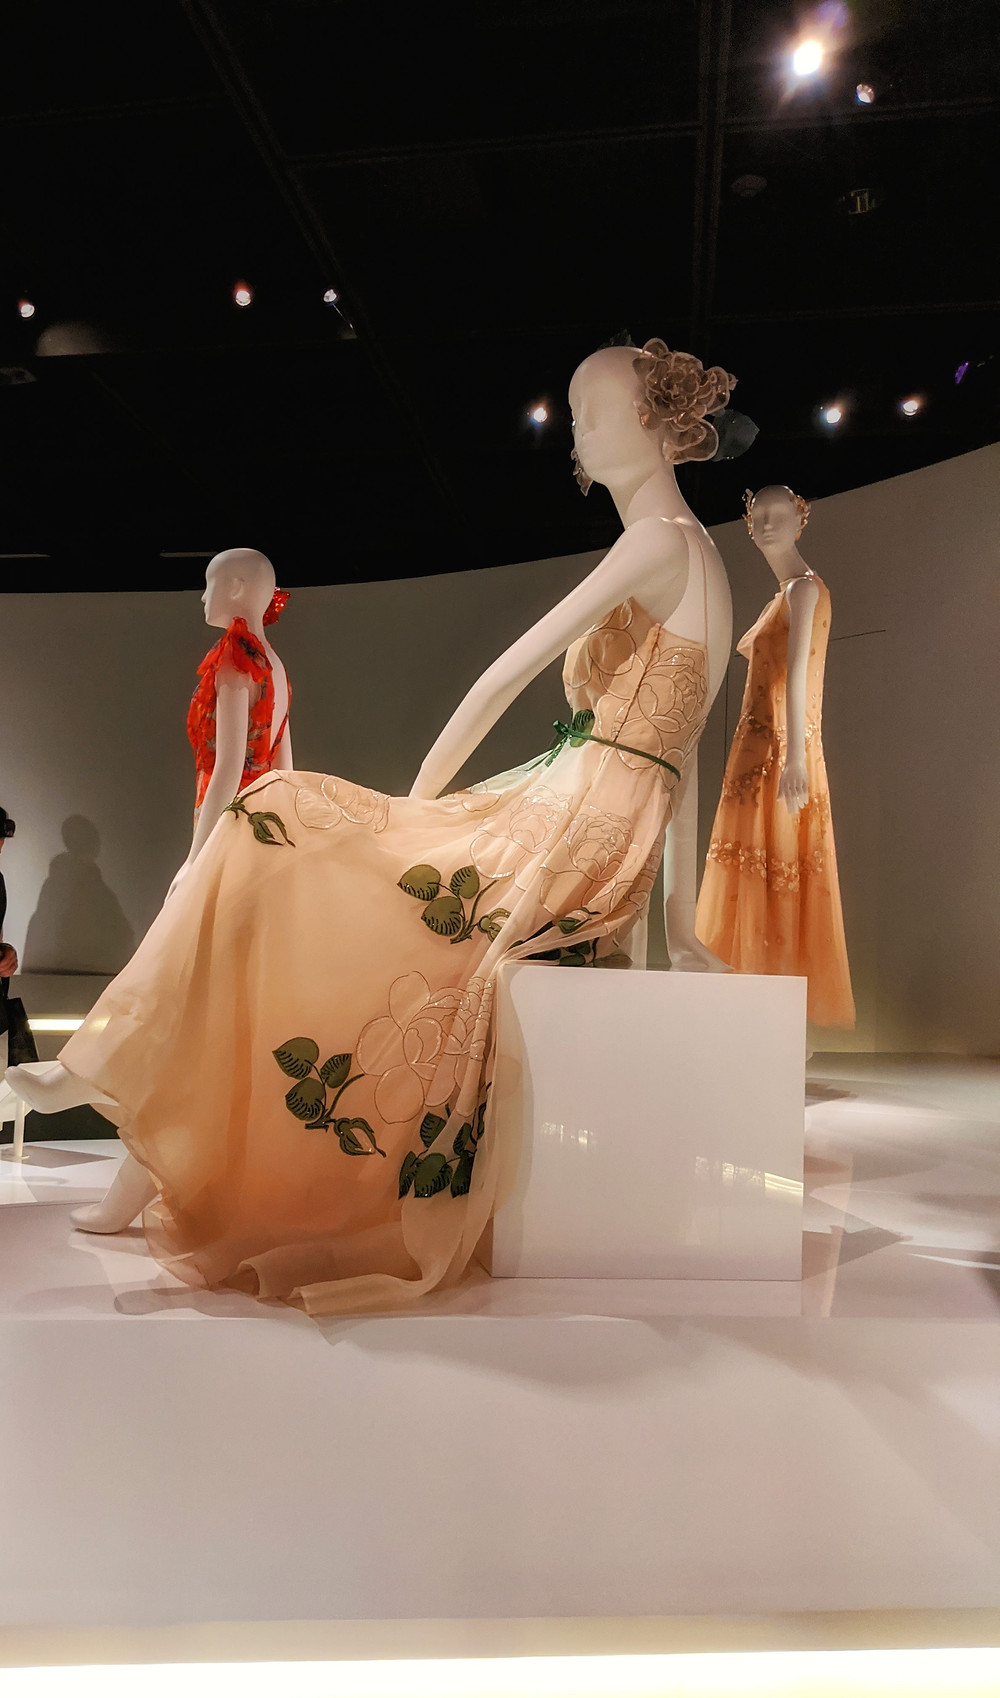 three-manequins-dressed-in-elegant-dresses-in-a-museum-exhibit